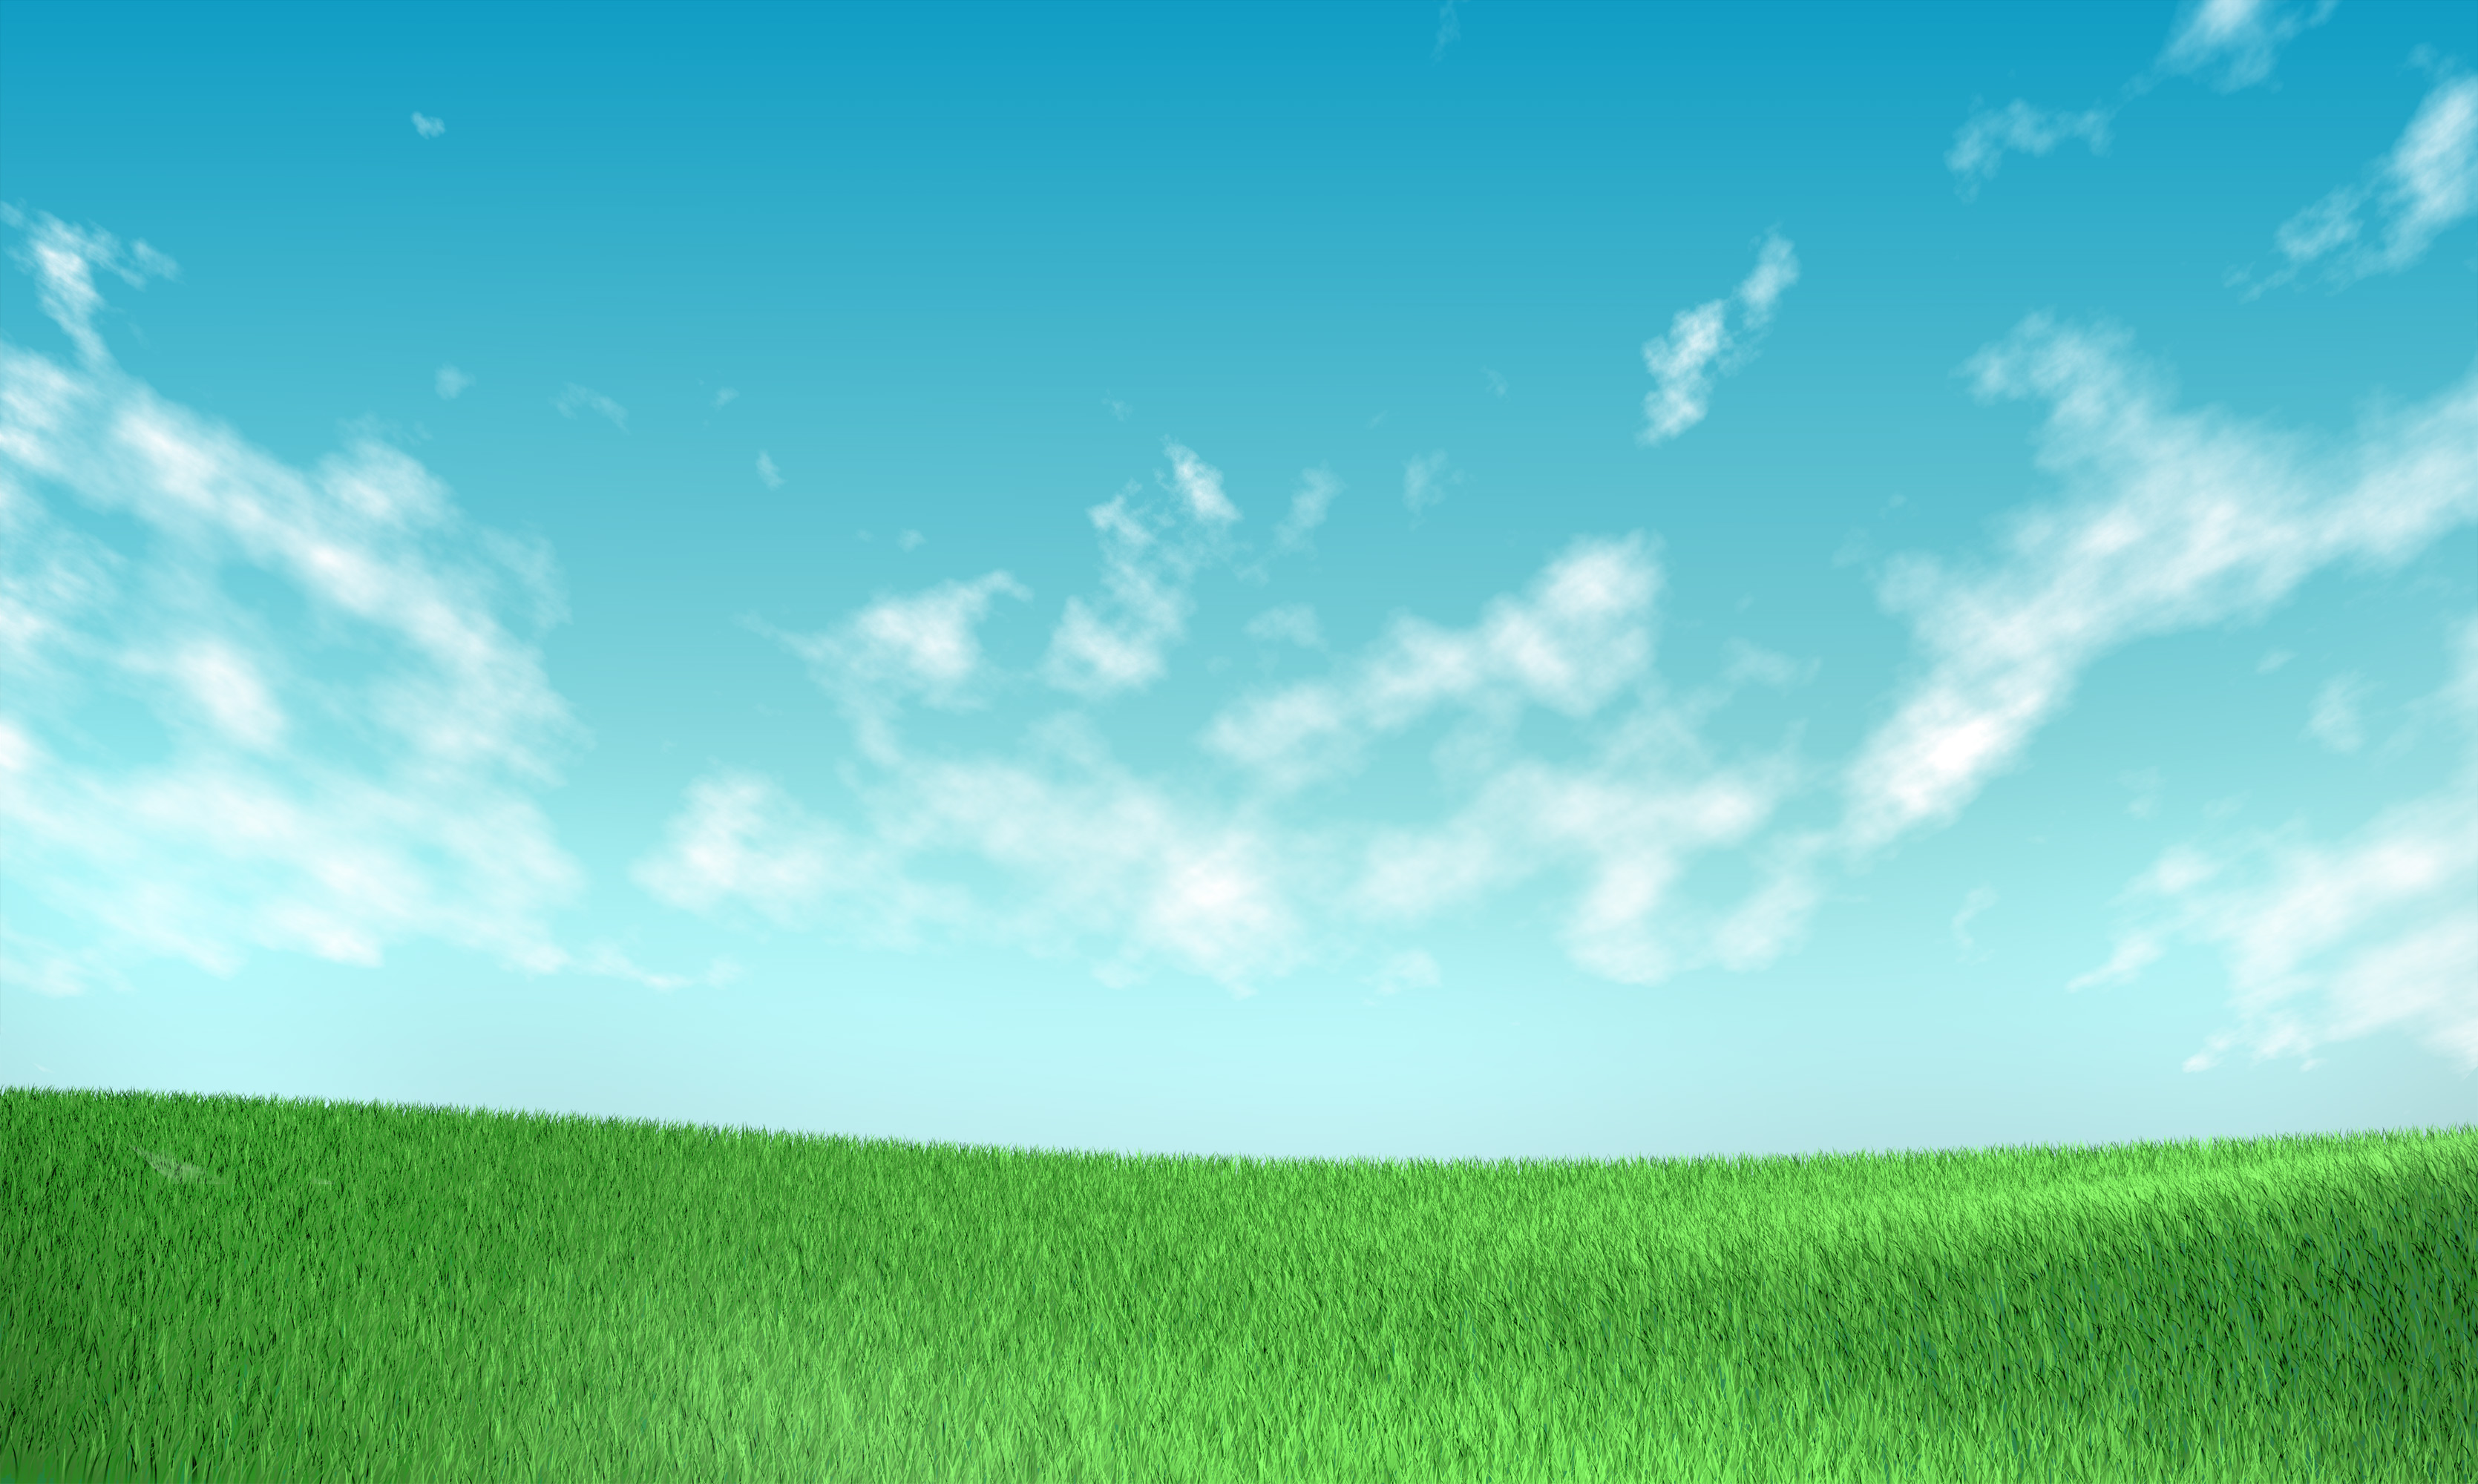 png library download Station . Grass and sky background clipart